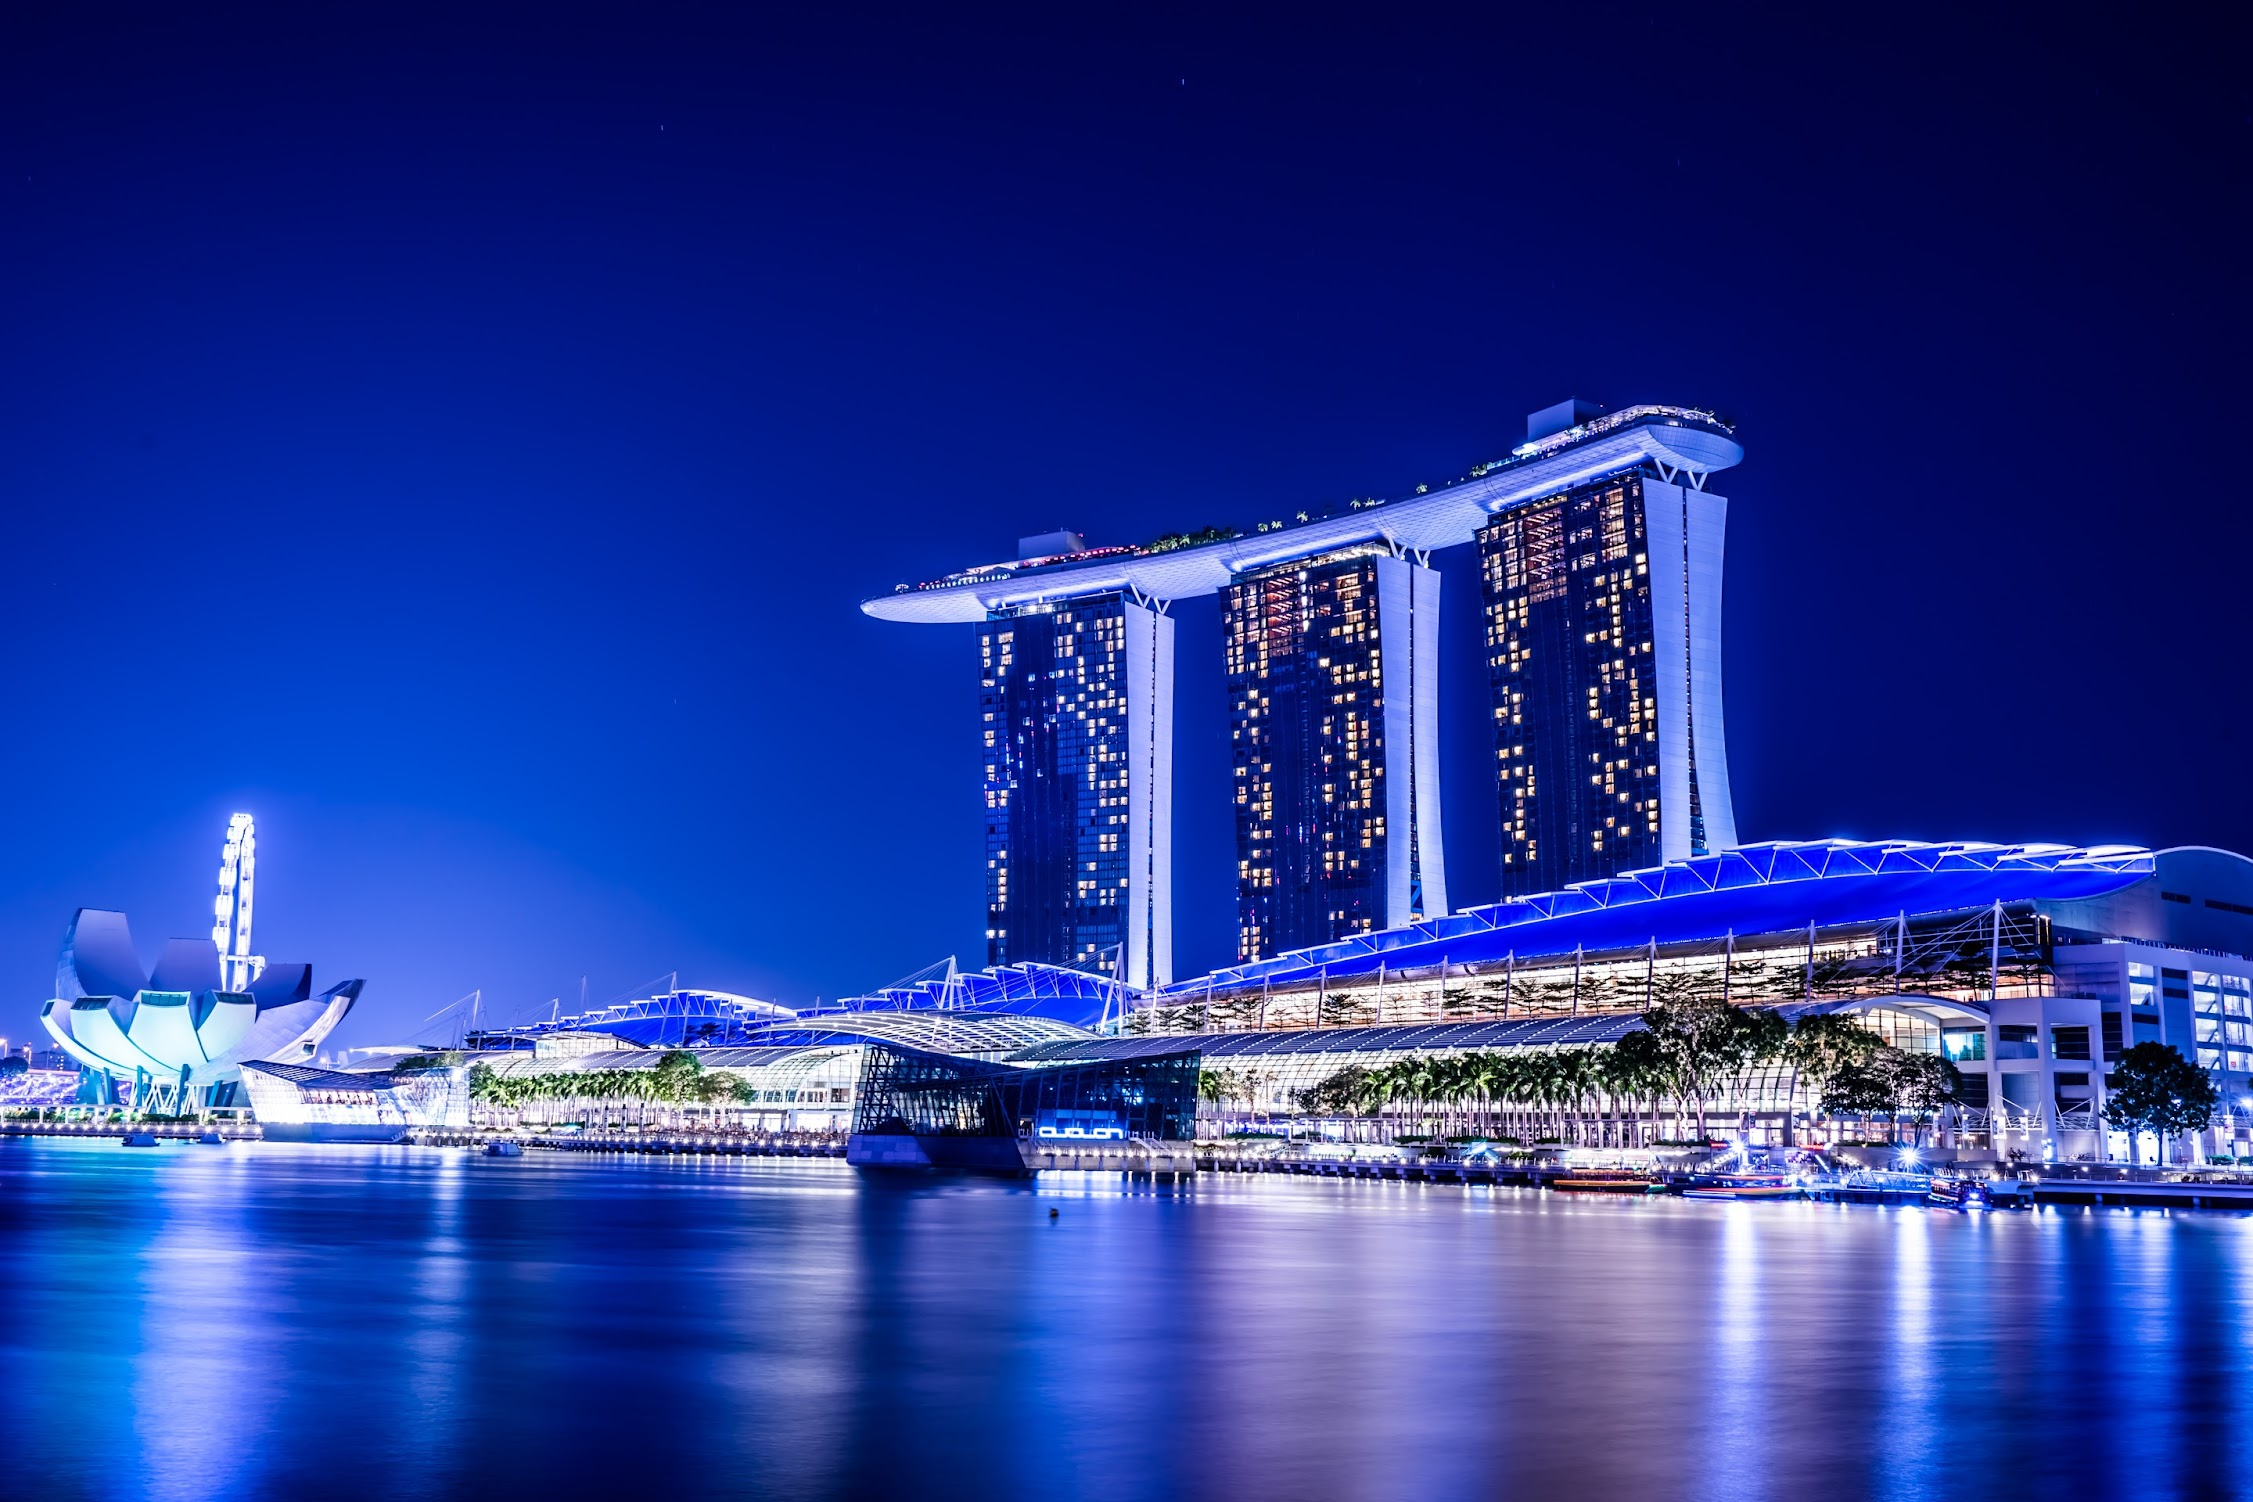 Singapore Marina Bay Sands night view9